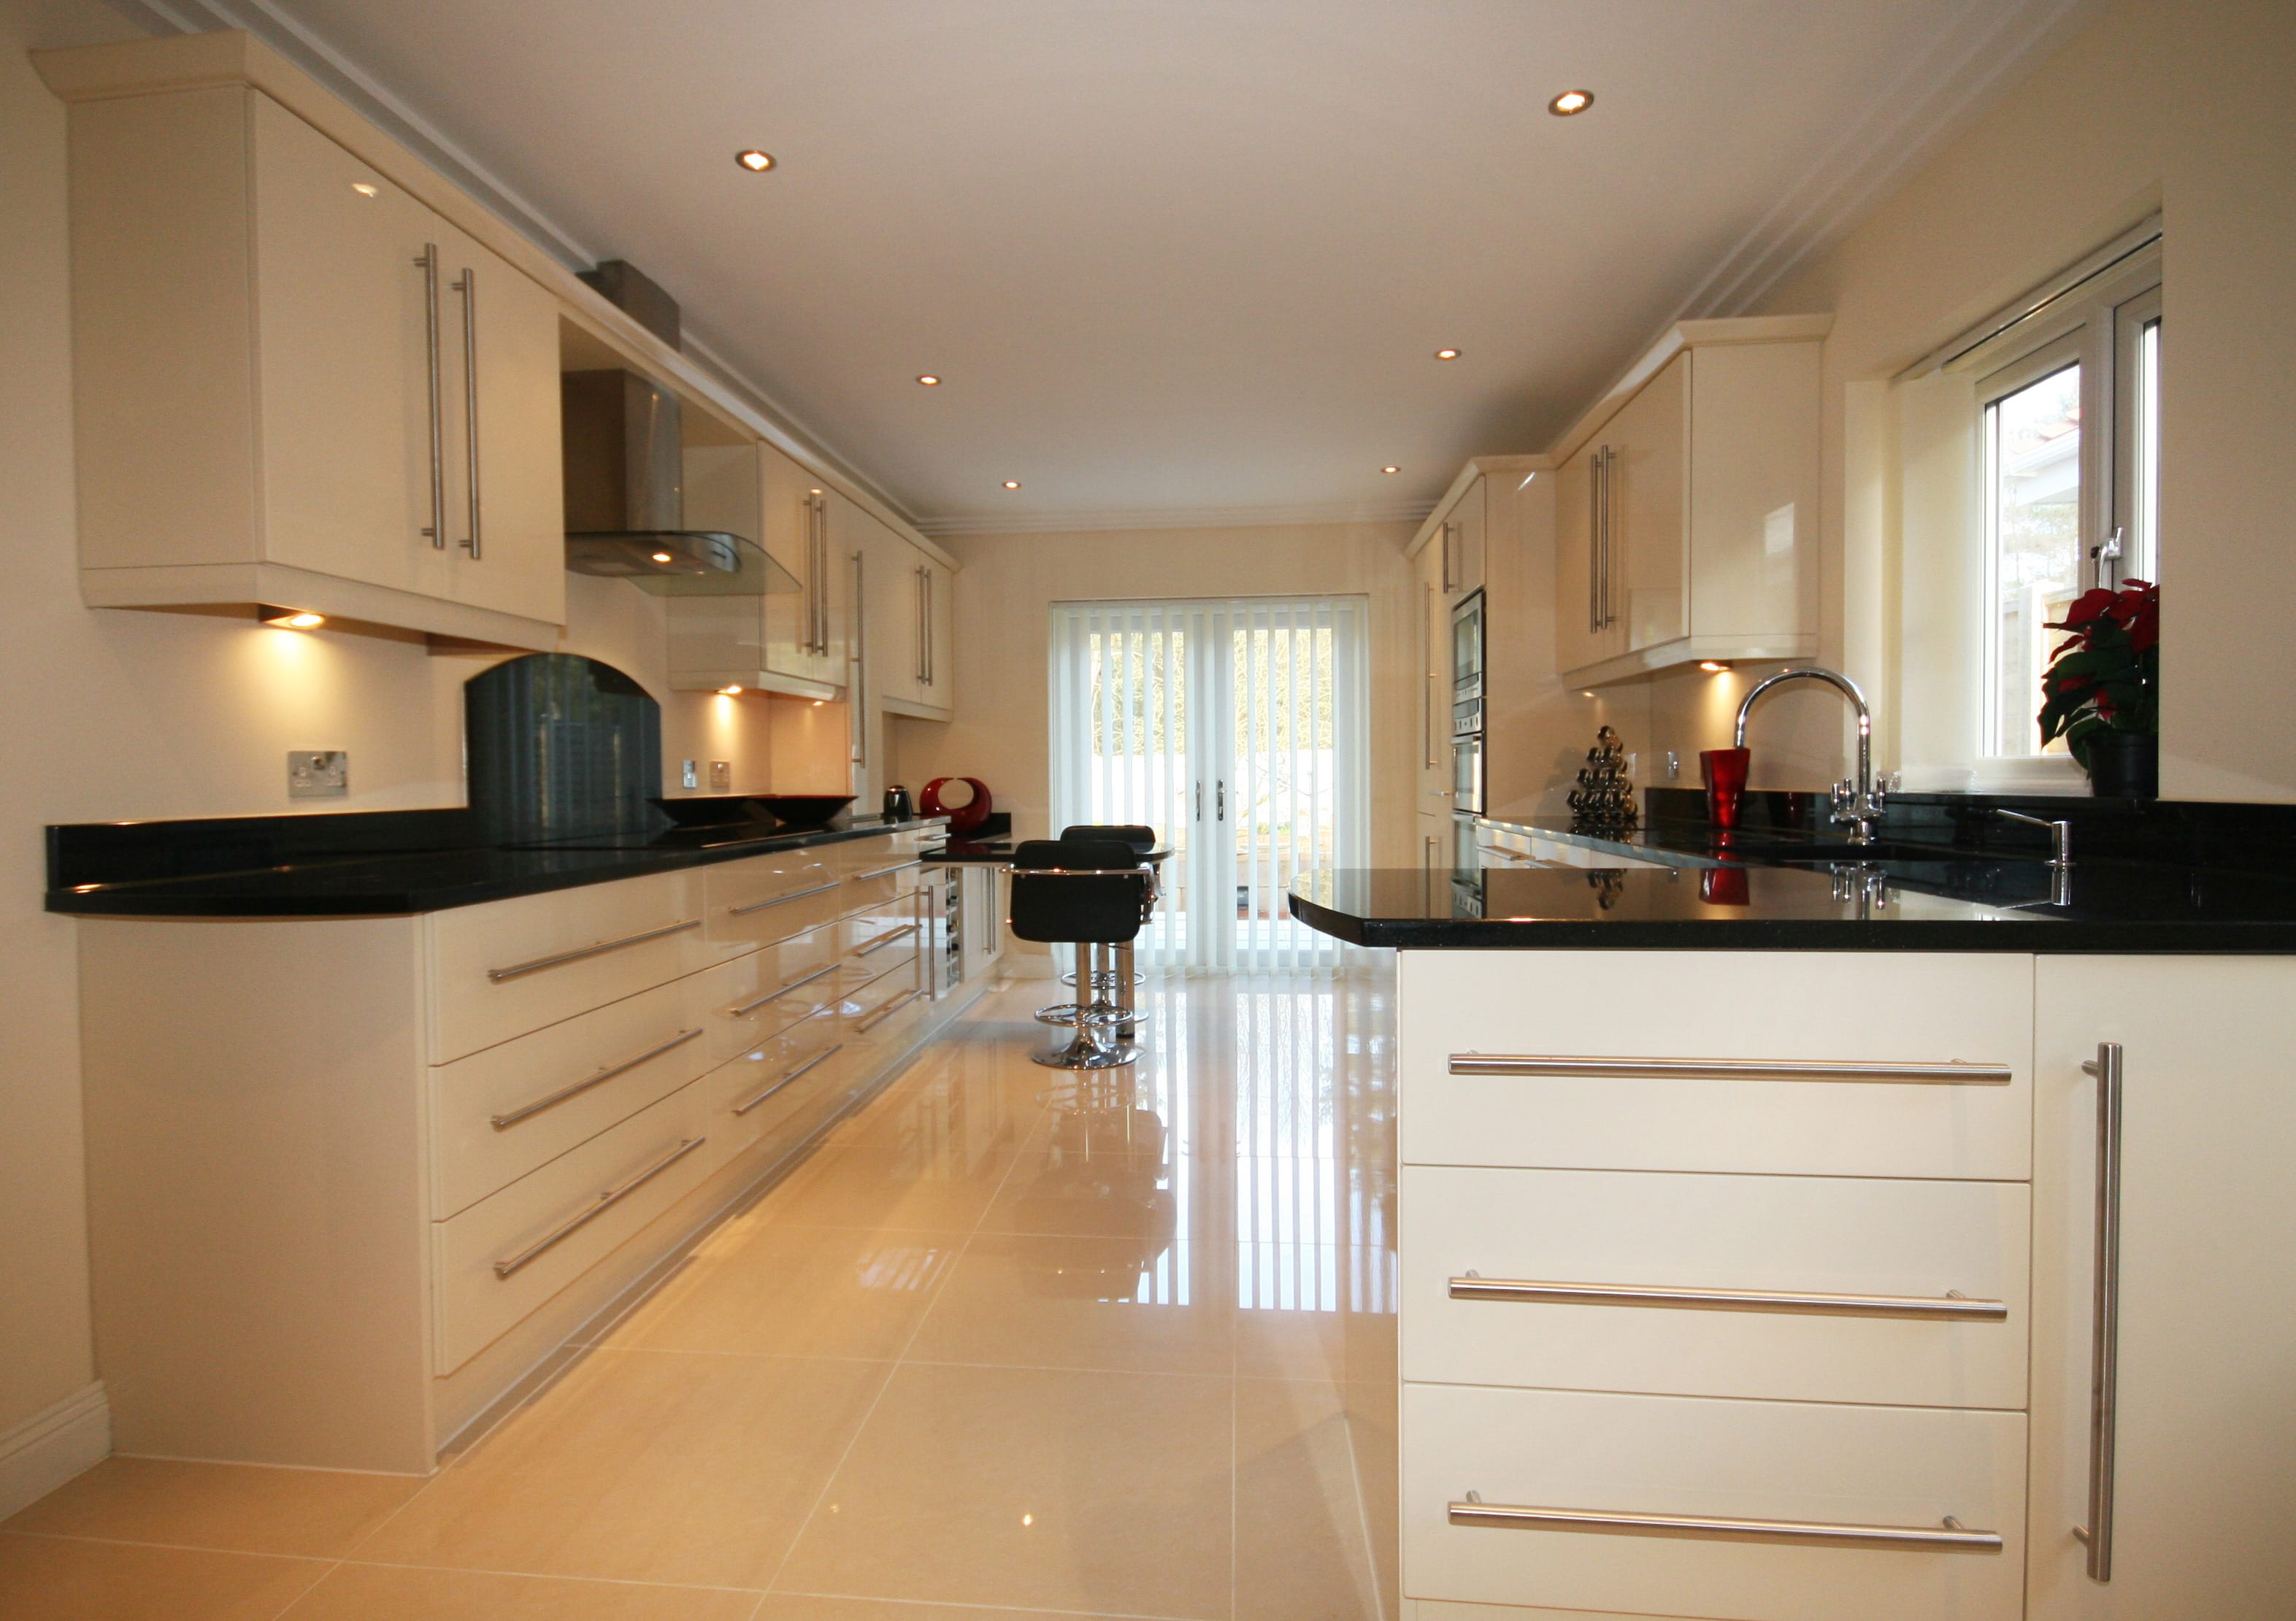 Bespoke Fitted Kitchens in Newcastle